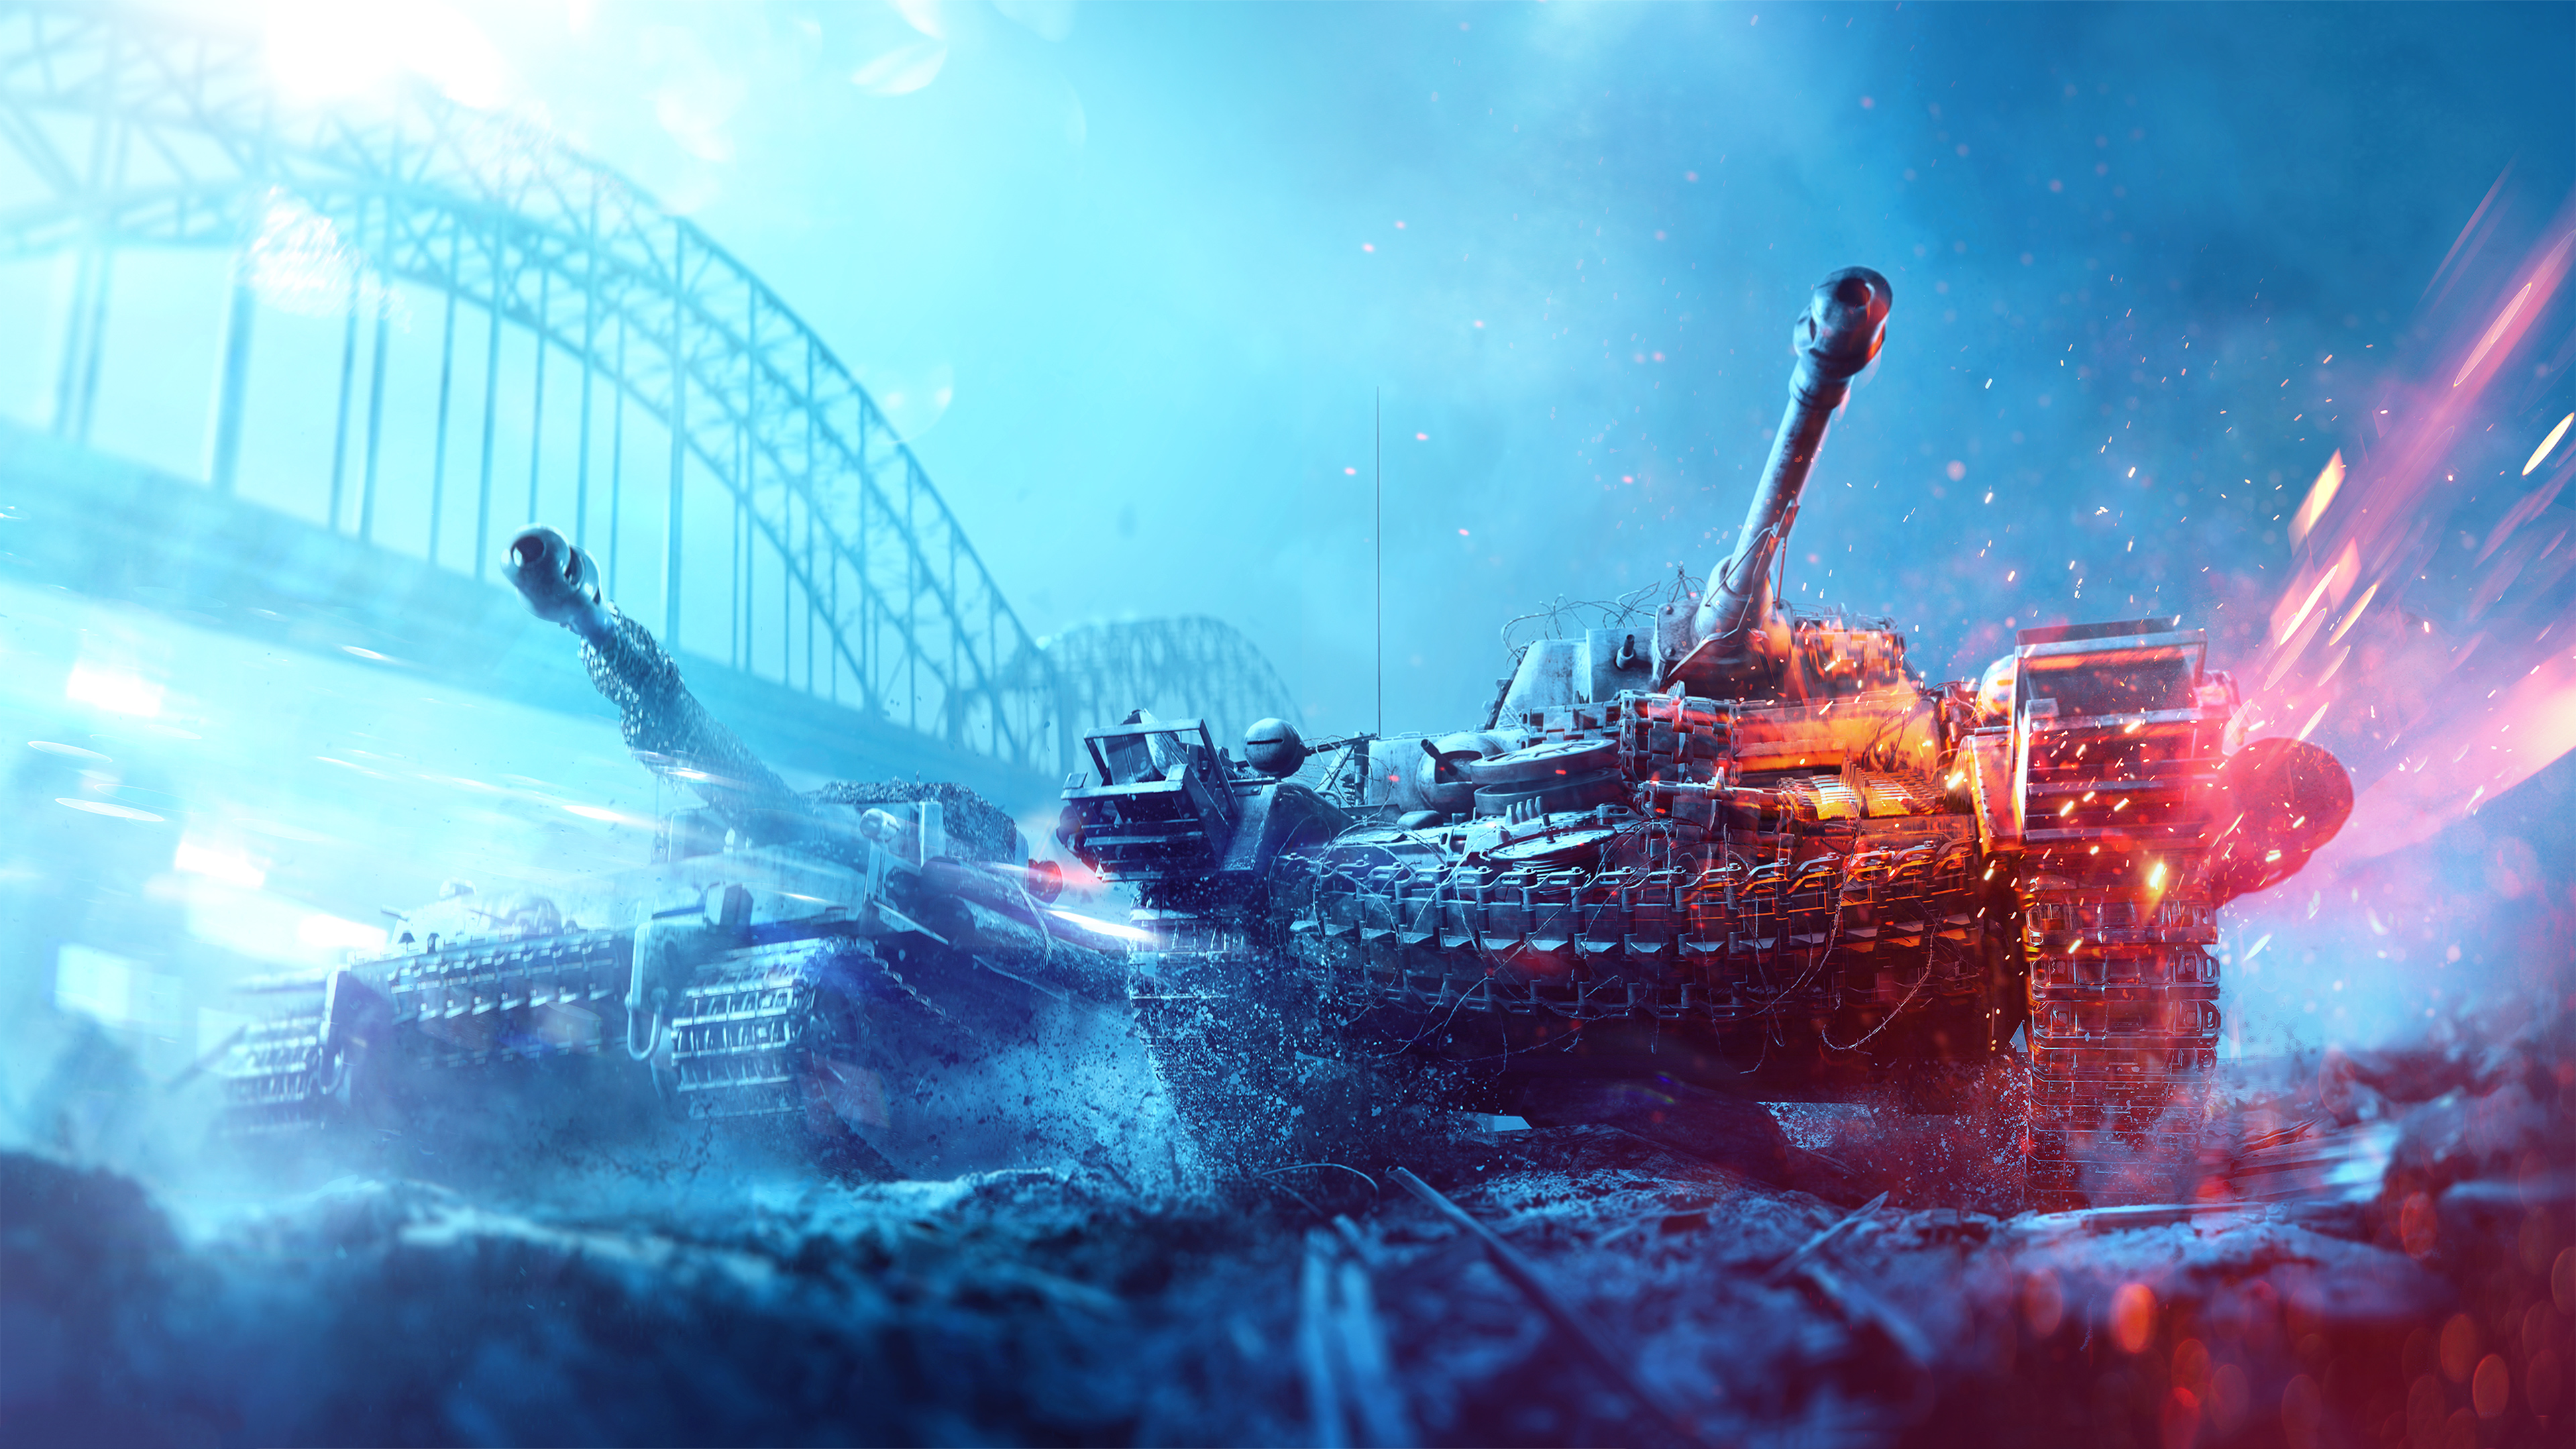 Battlefield 5 Hd Games 4k Wallpapers Images Backgrounds